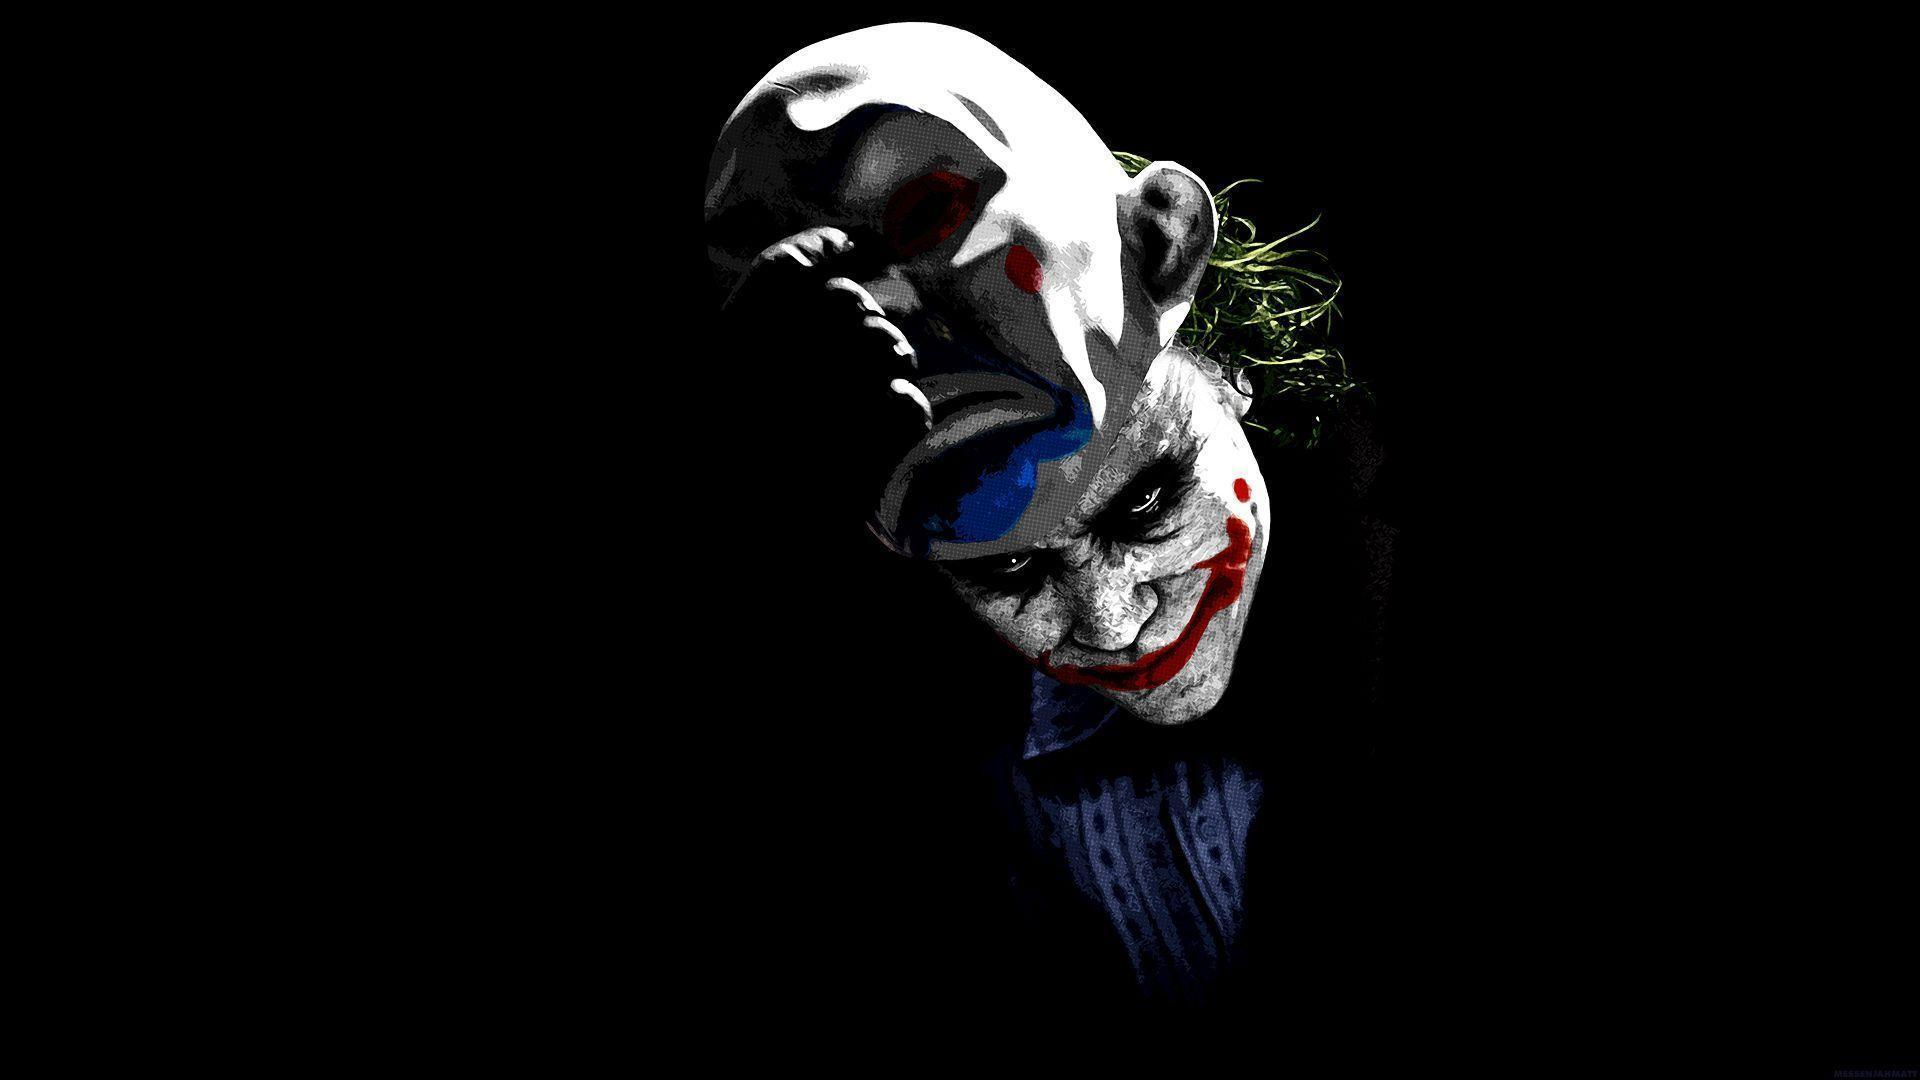 The Joker Wallpapers - Wallpaper Cave